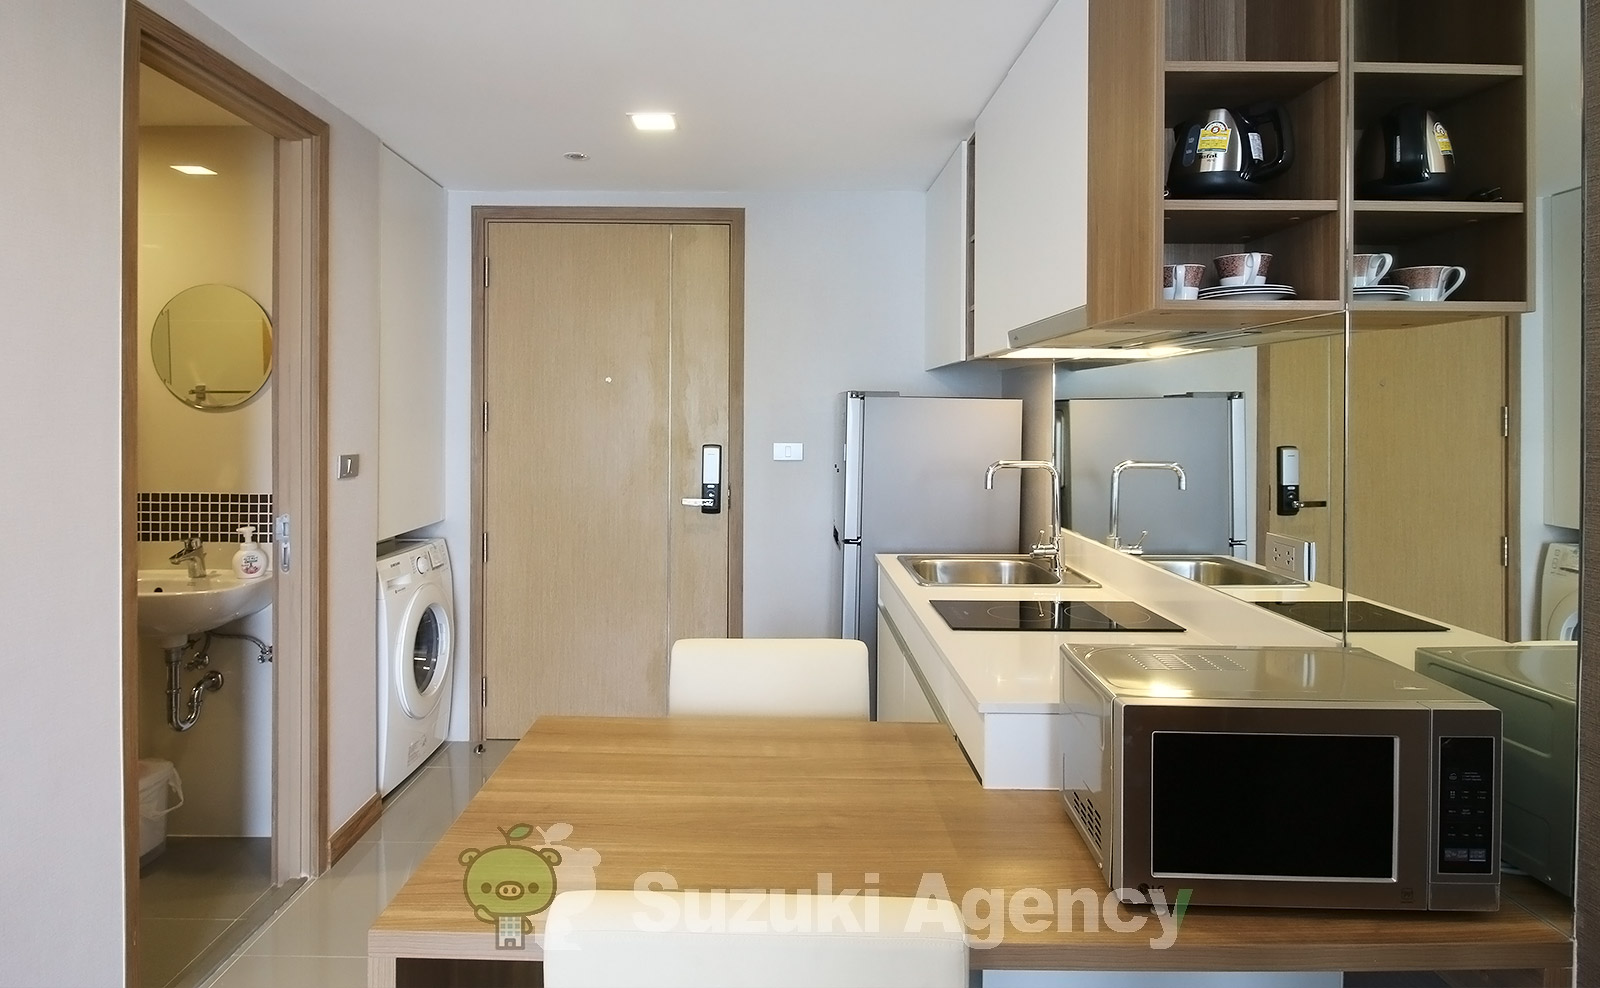 InterLux Premier Sukhumvit 13:1Bed Room Photos No.5